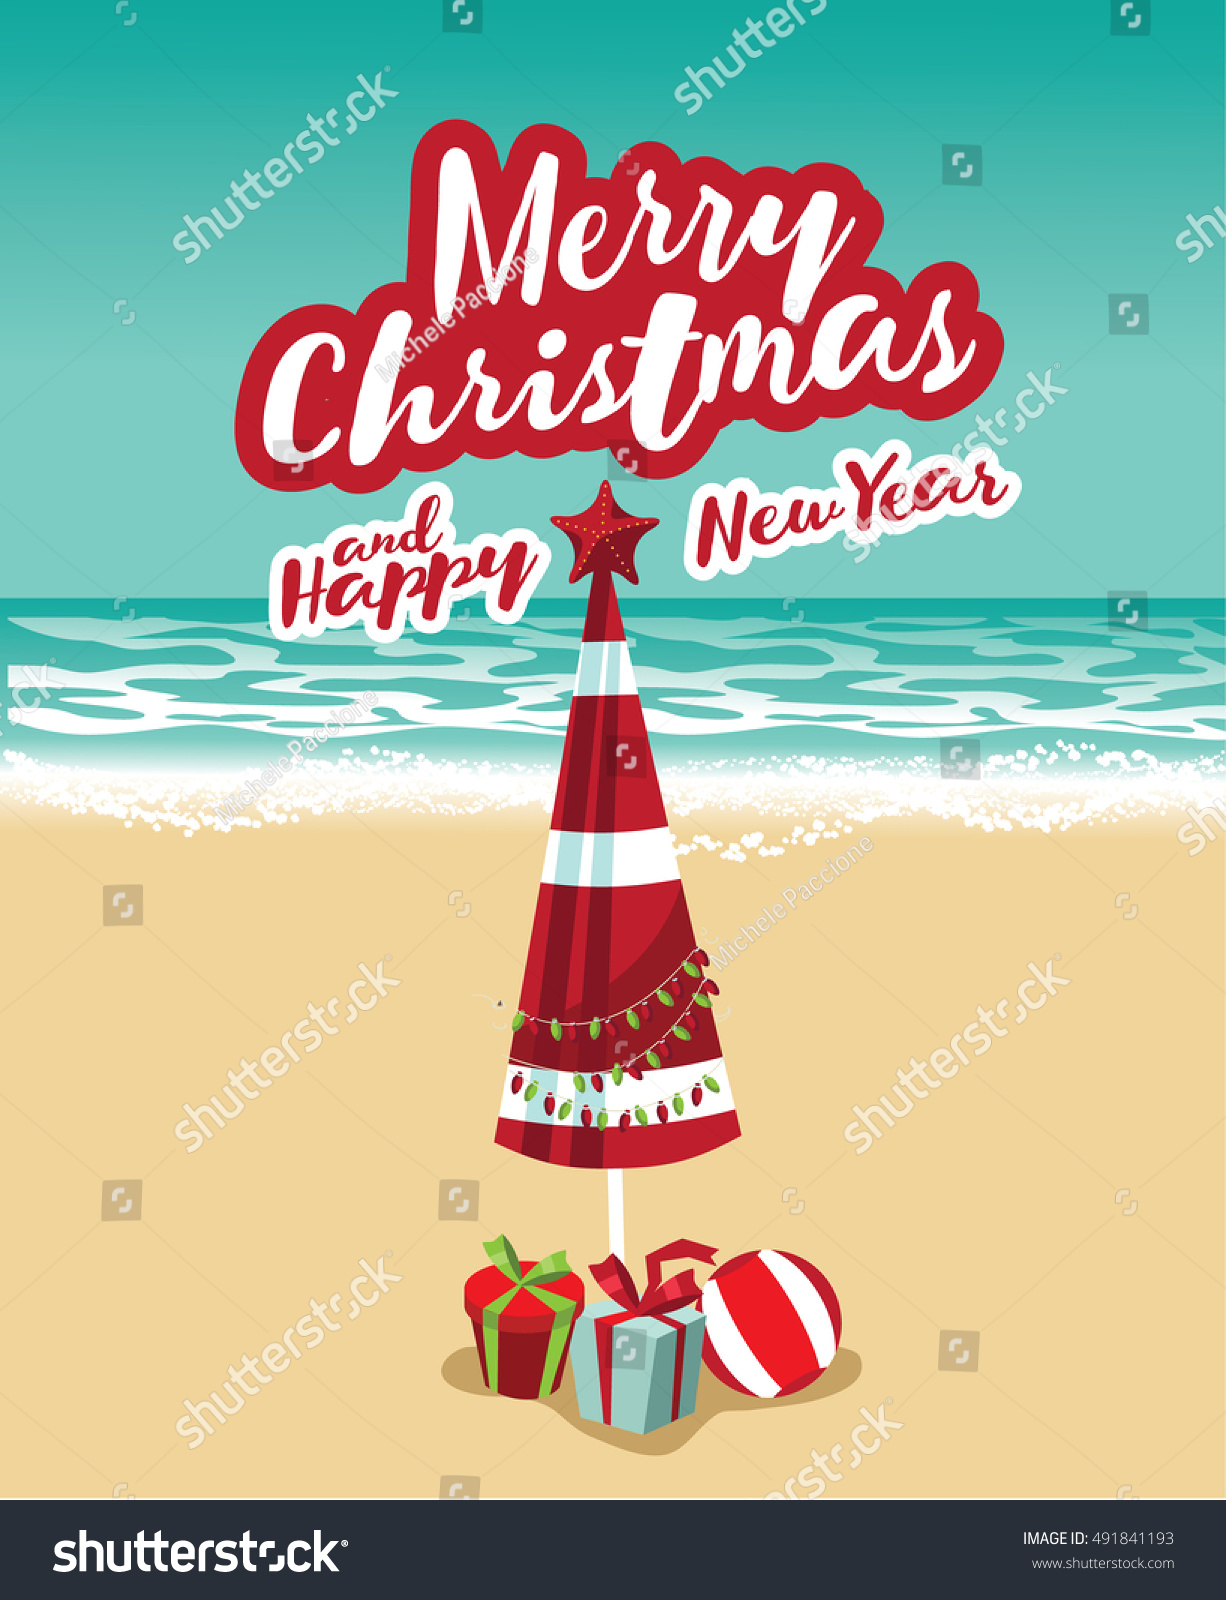 merry christmas and a happy new year in a warm climate design beach umbrella christmas - Merry Christmas Beach